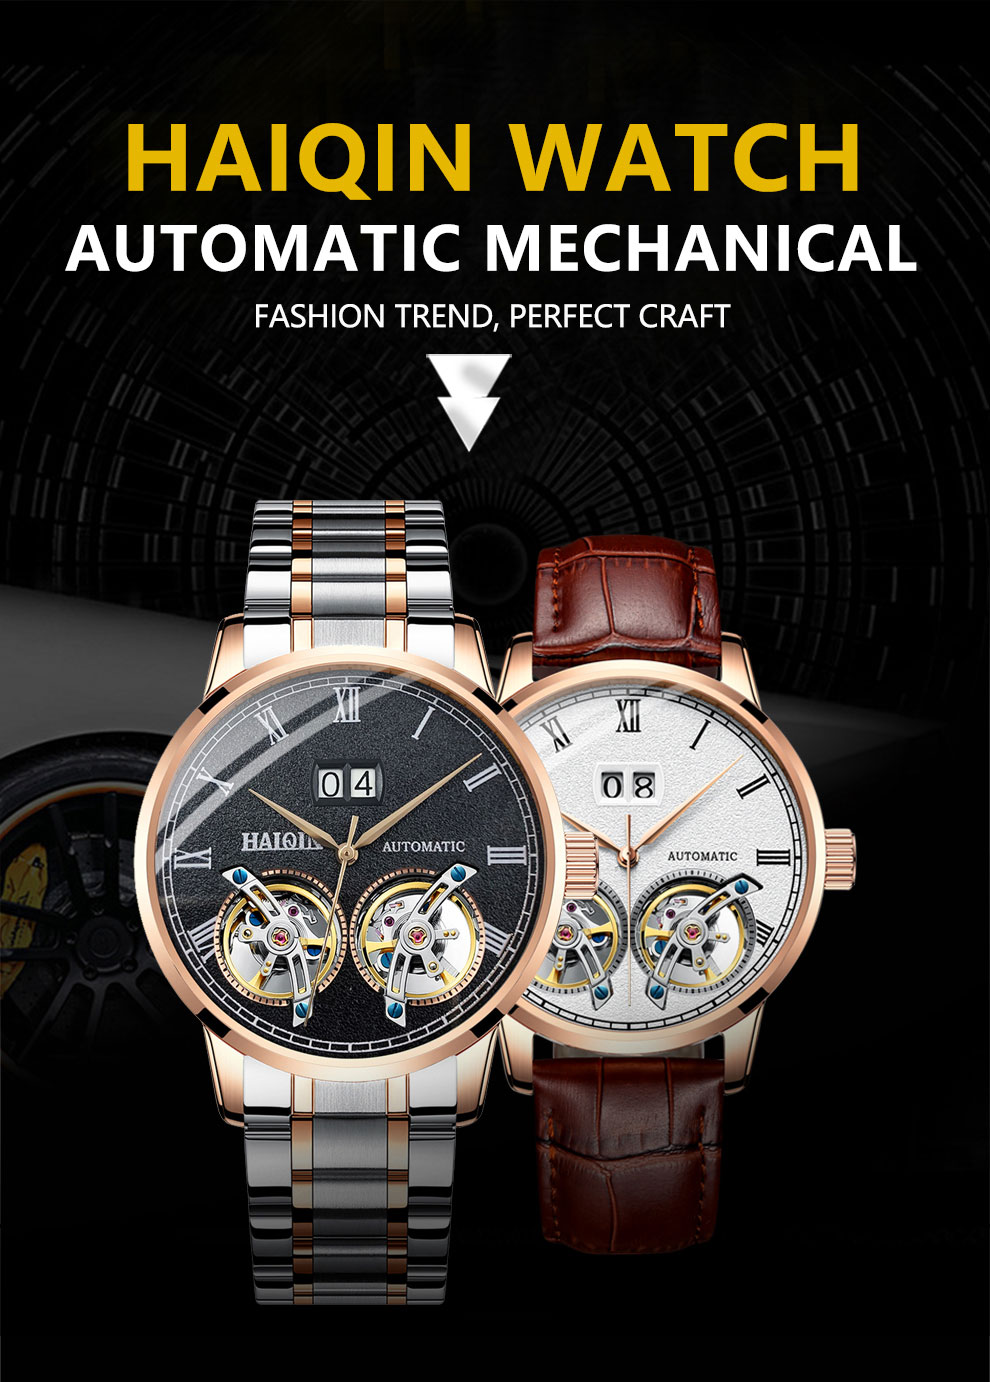 HAIQIN Men's watches Mens Watches top brand luxury Automatic mechanical sport watch men wirstwatch Tourbillon Reloj hombres 2020 Hd41df7923f3843cb892c04372f502371F